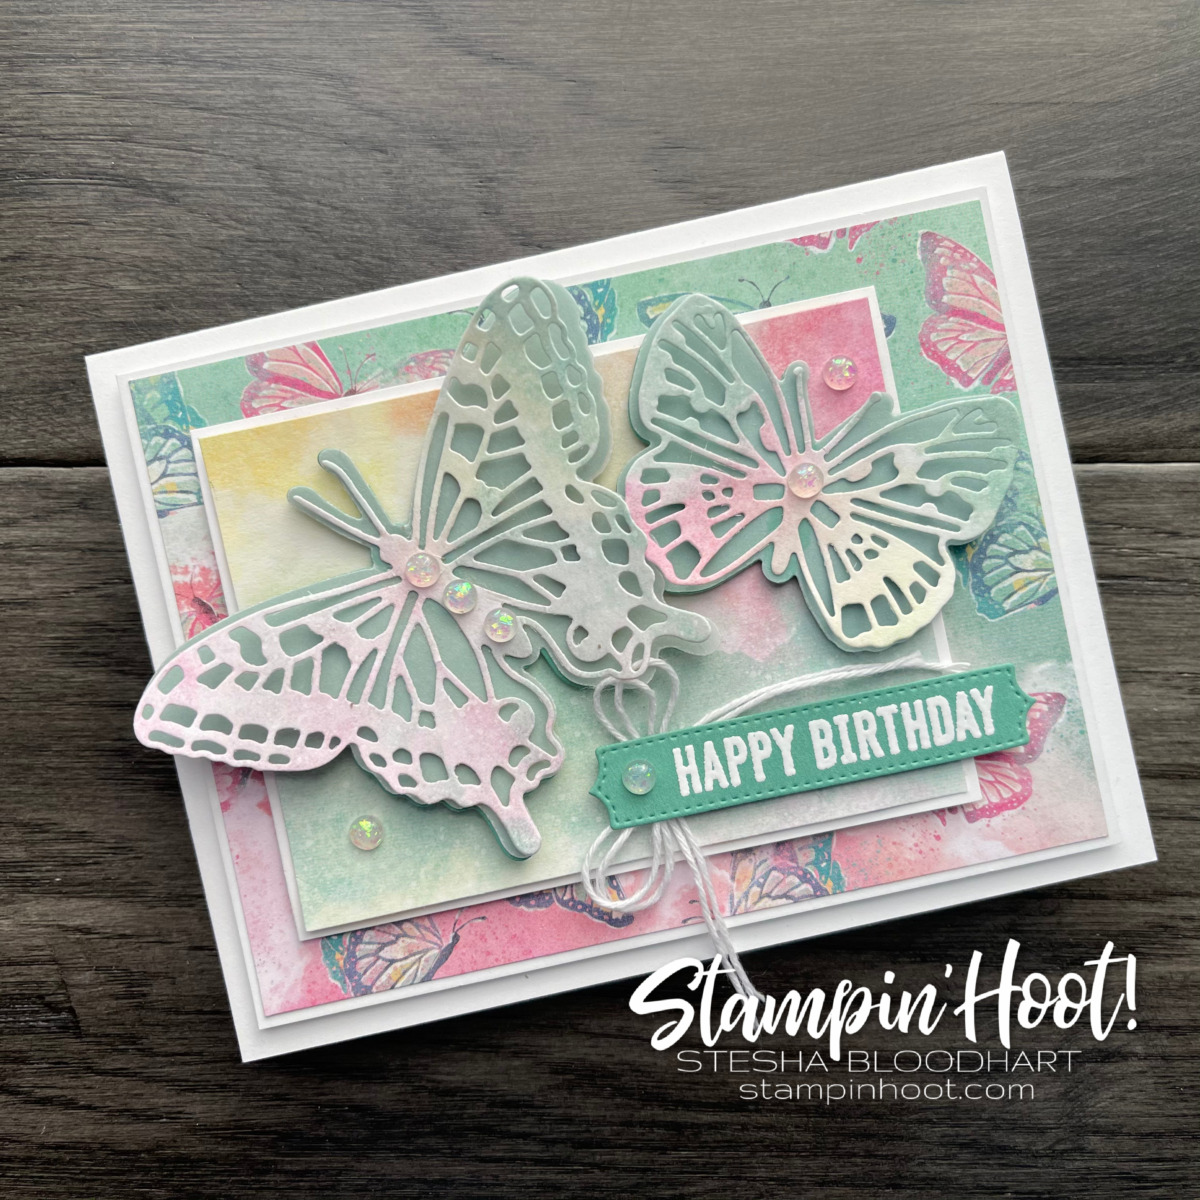 Butterfly Bouquet Bundle from Stampin' Up! Card by Stesha Bloodhart, Stampin' Hoot! #tgifc303 (1)